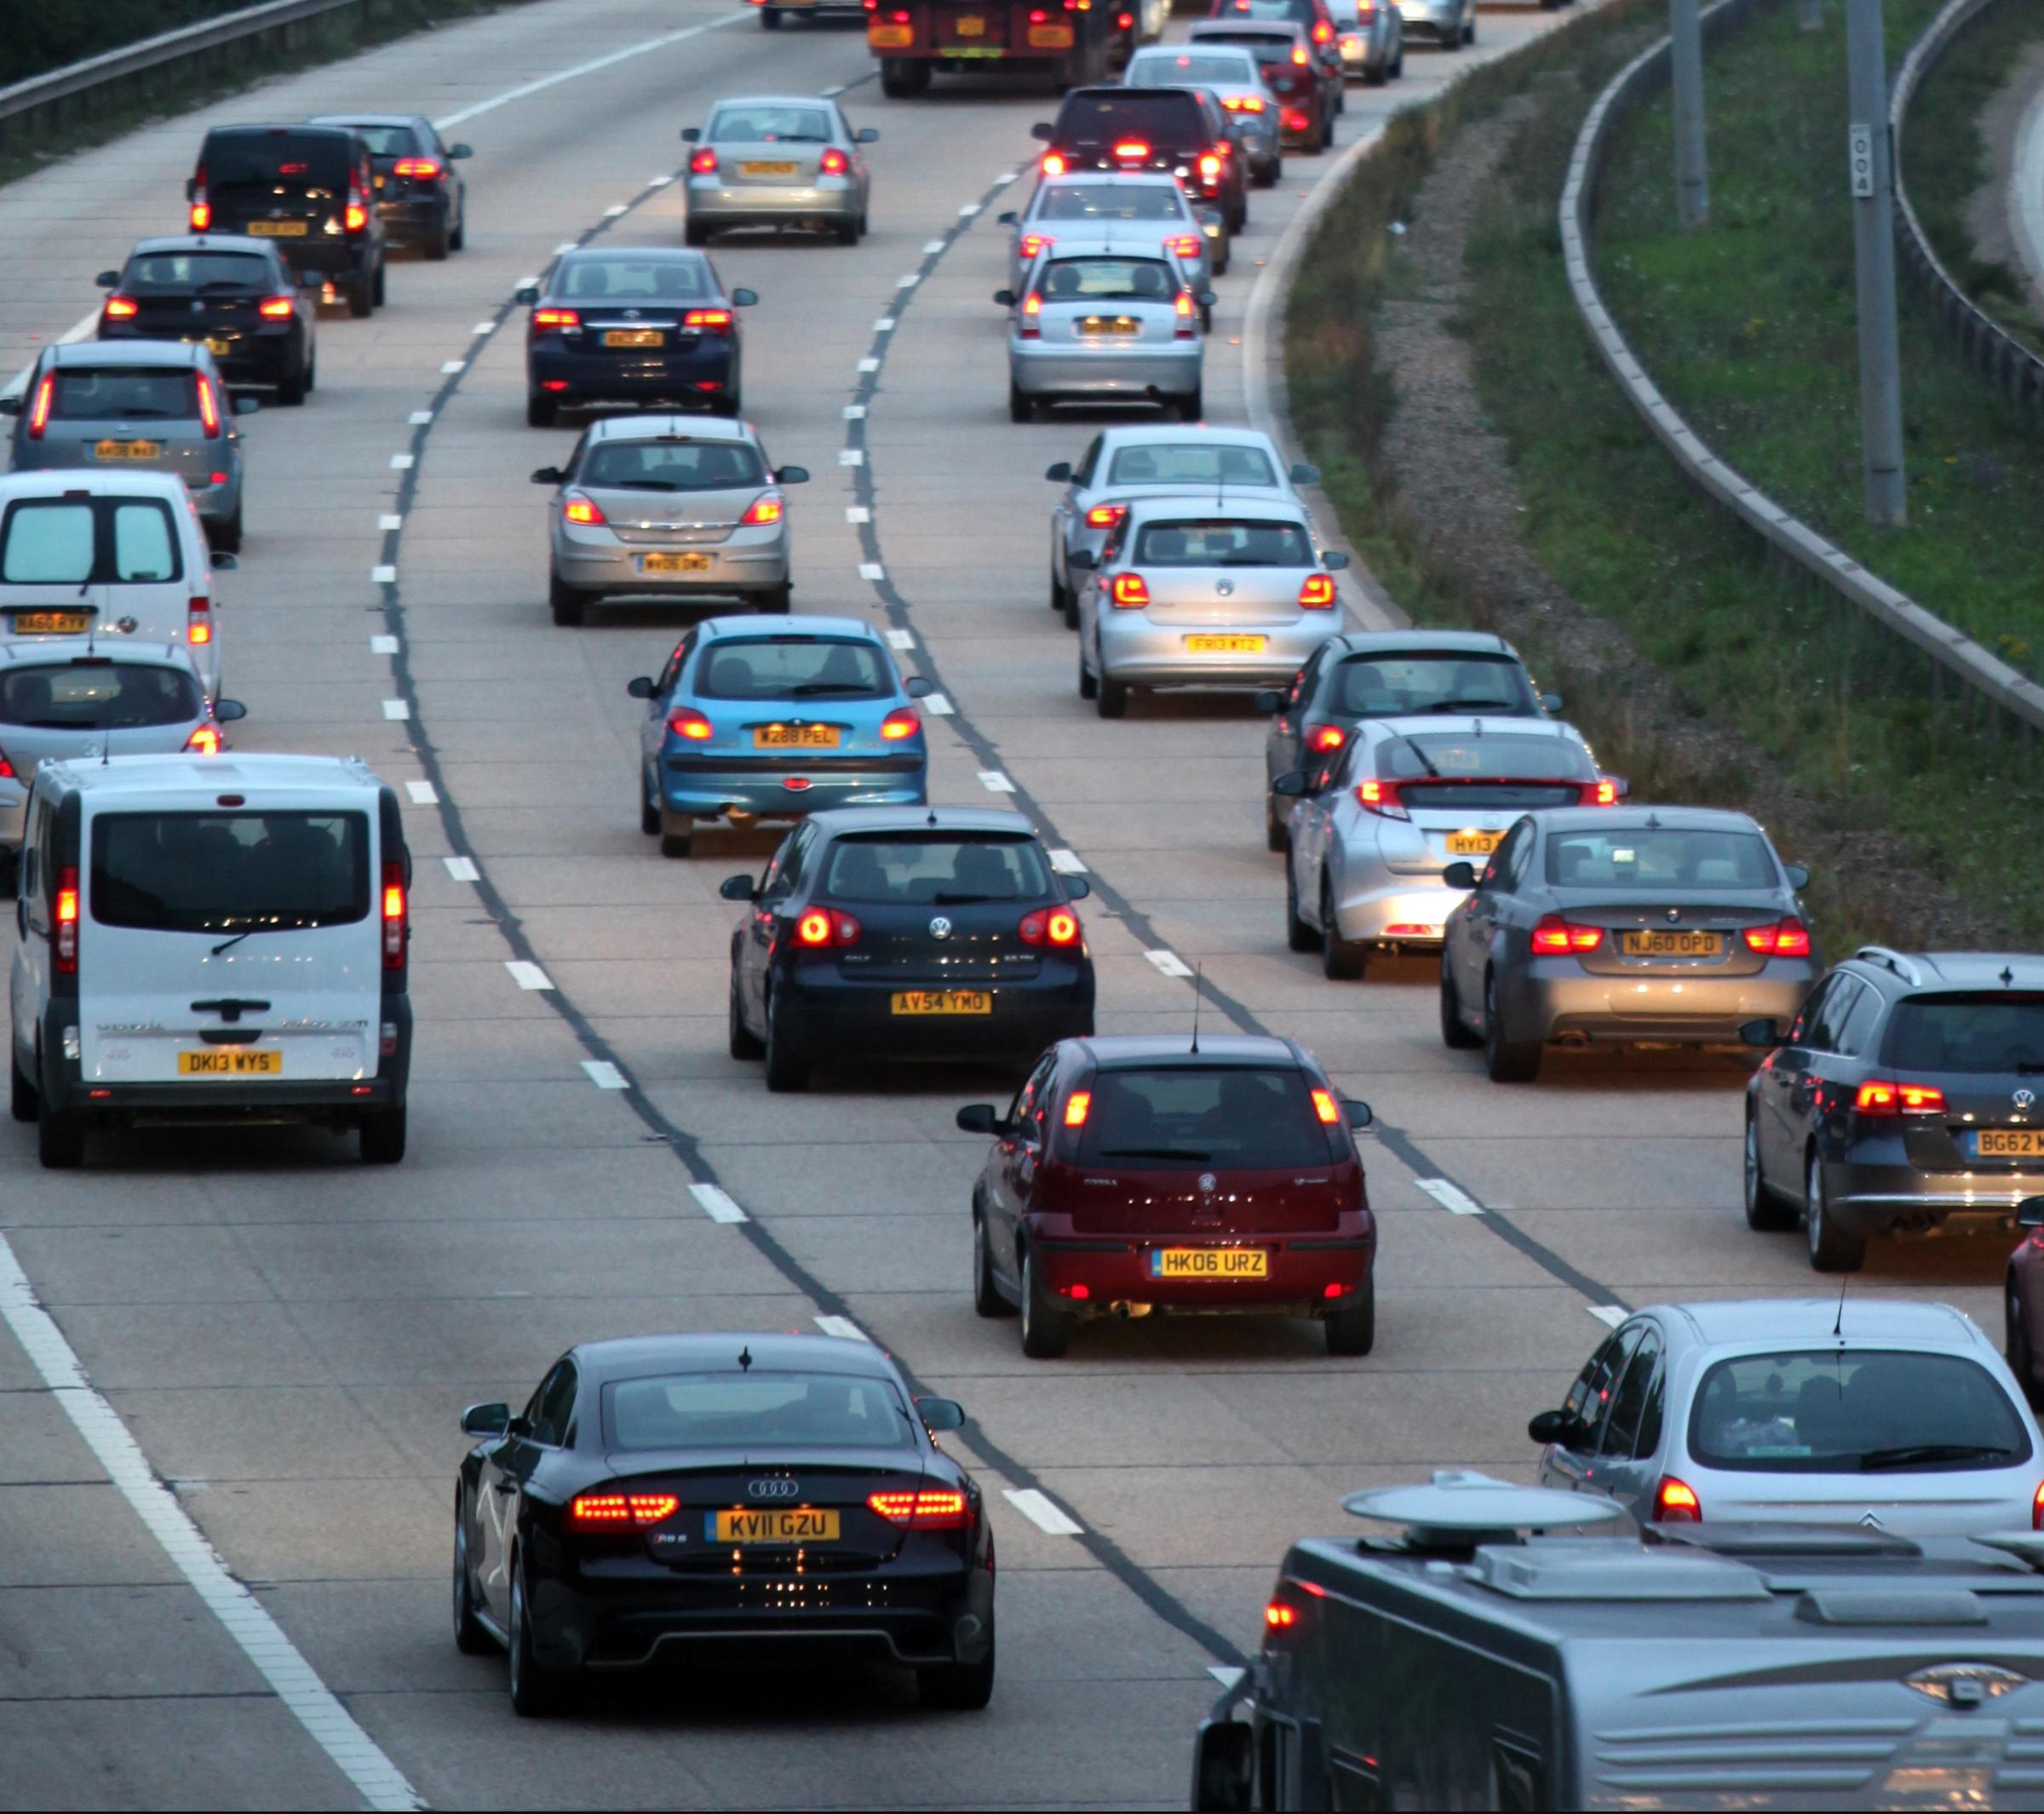 TWO four-car pile ups cause motorway chaos